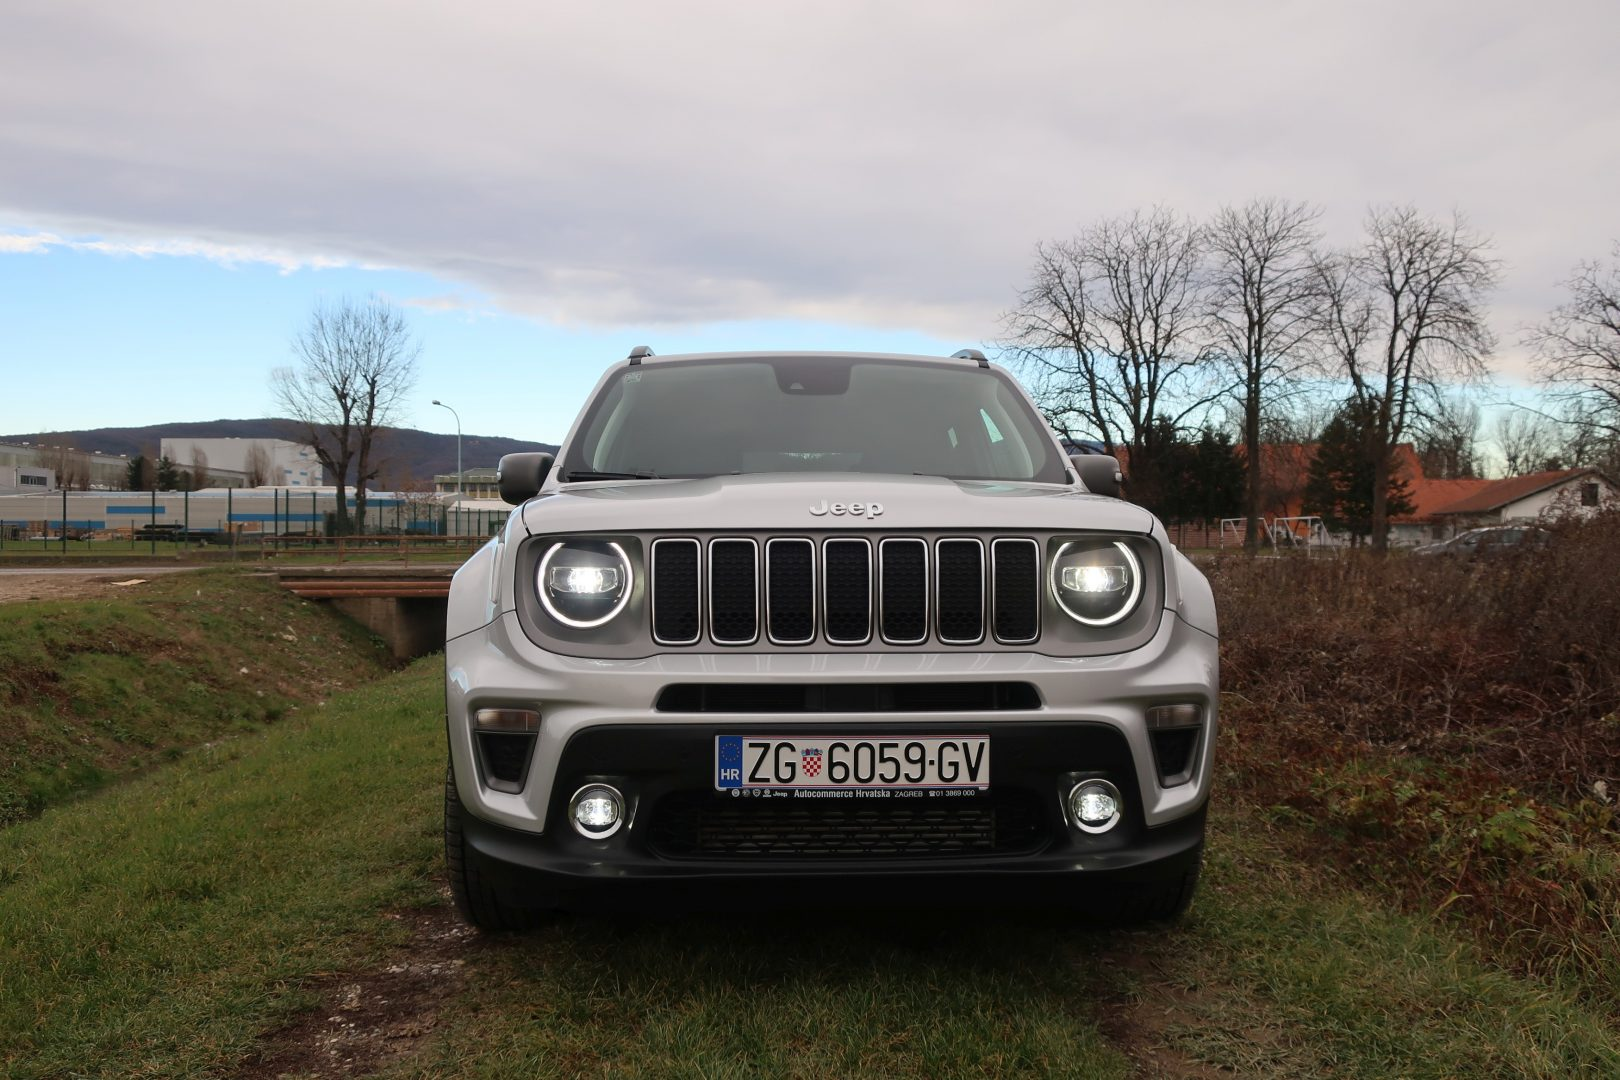 TEST Jeep Renegade 1.6 Mjet 120 TCT6 FWD Limited